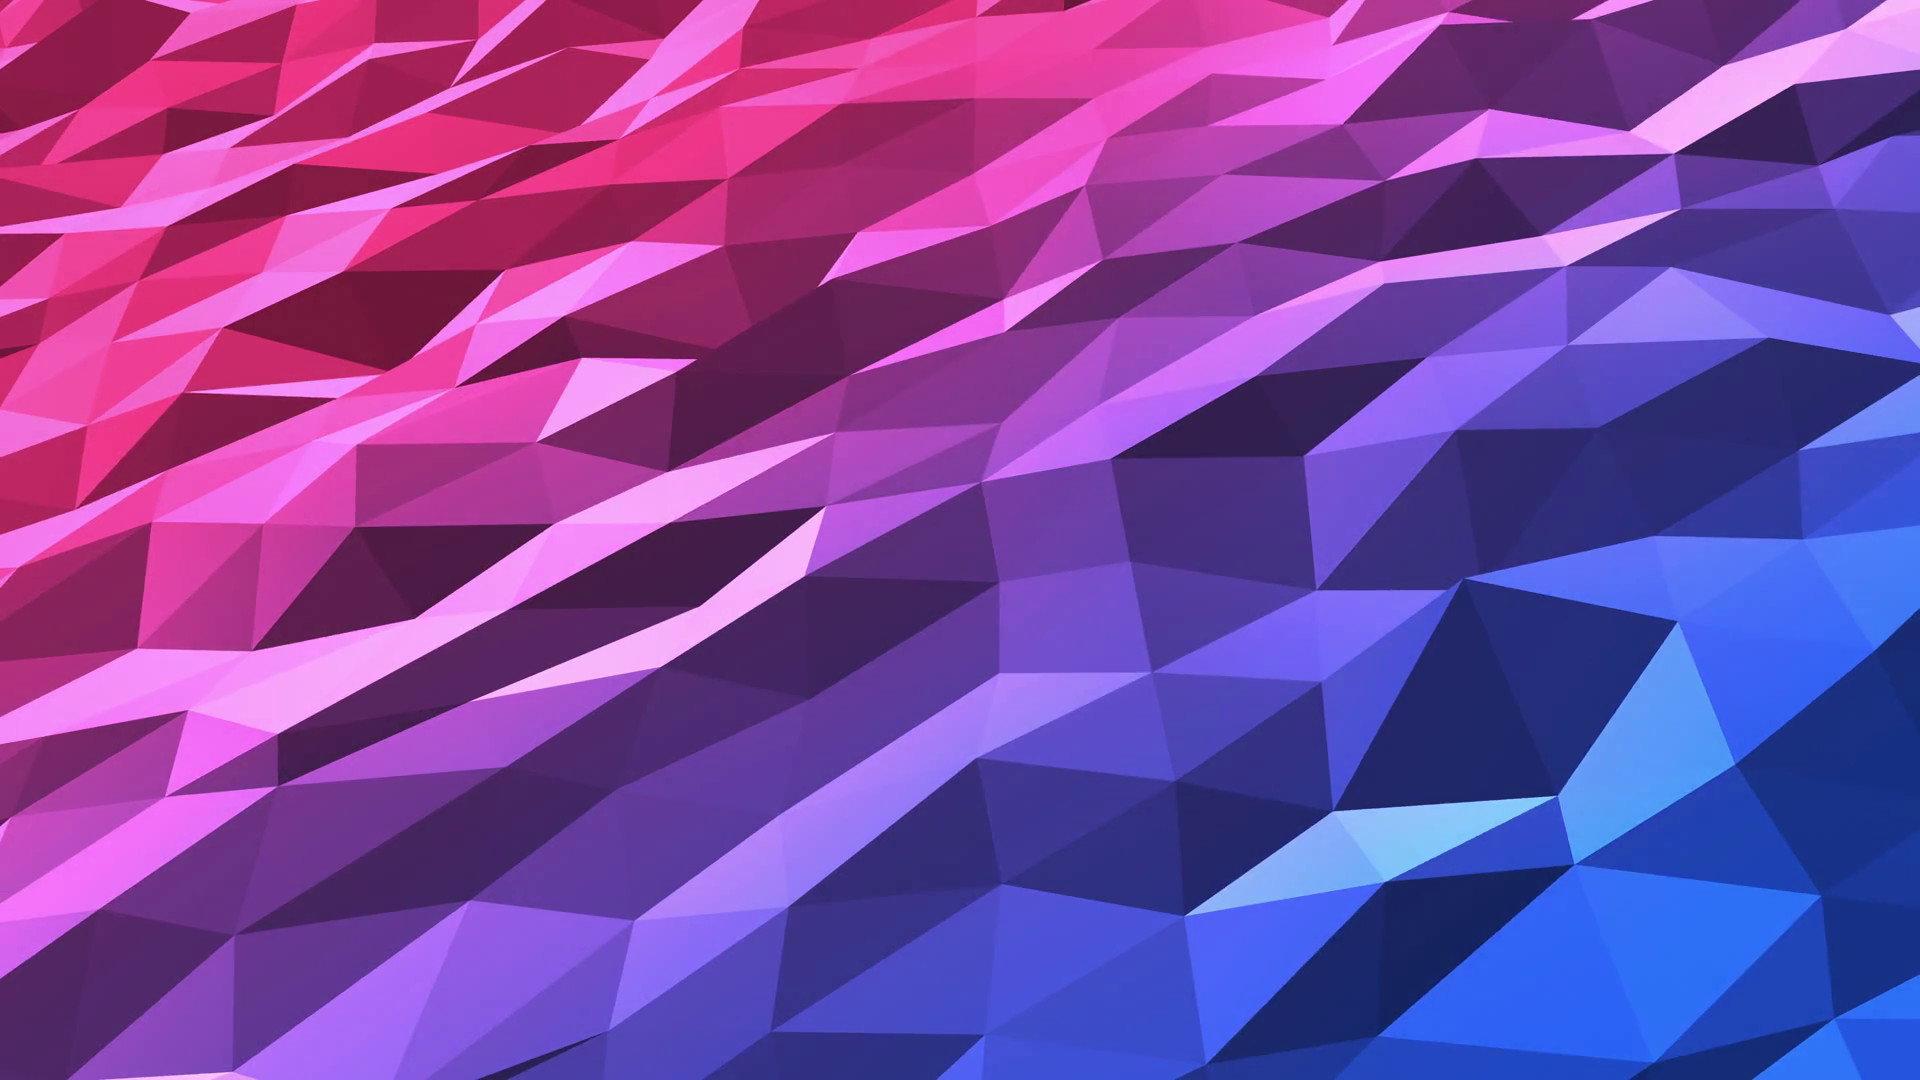 pink purple and blue backgrounds (51+ images)